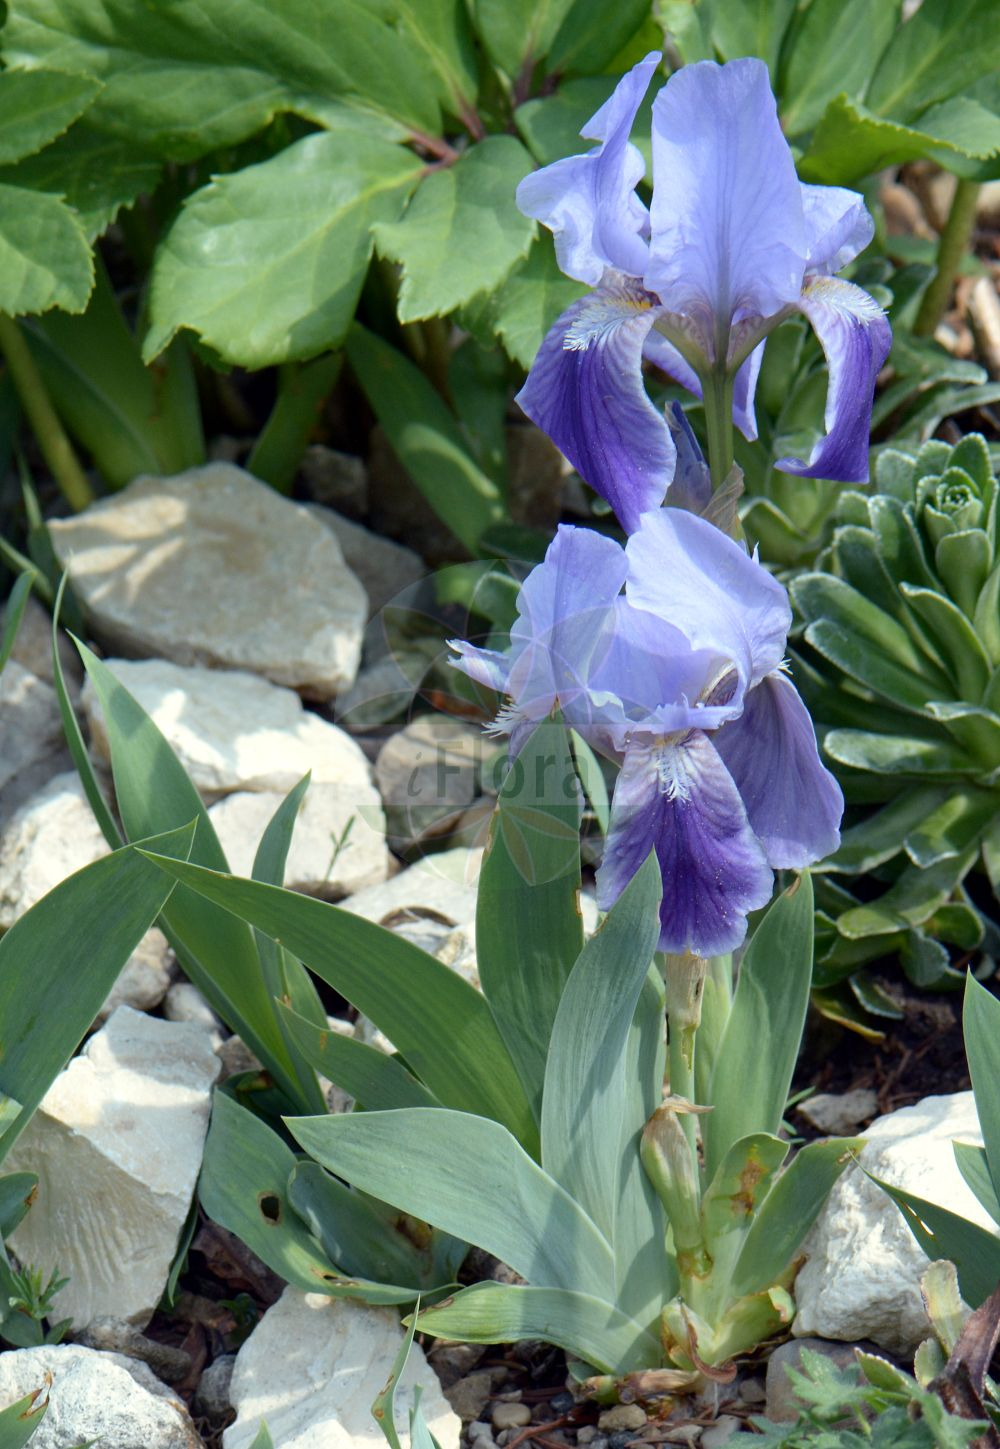 Foto von Iris lutescens. Das Foto wurde in Muenchen, Bayern, Deutschland aufgenommen. ---- Photo of Iris lutescens.The picture was taken in Munich, Bavaria, Germany. (Iris lutescens,Iris,Schwertlilie,Iris,Iridaceae,Schwertliliengewaechse,Iris family)